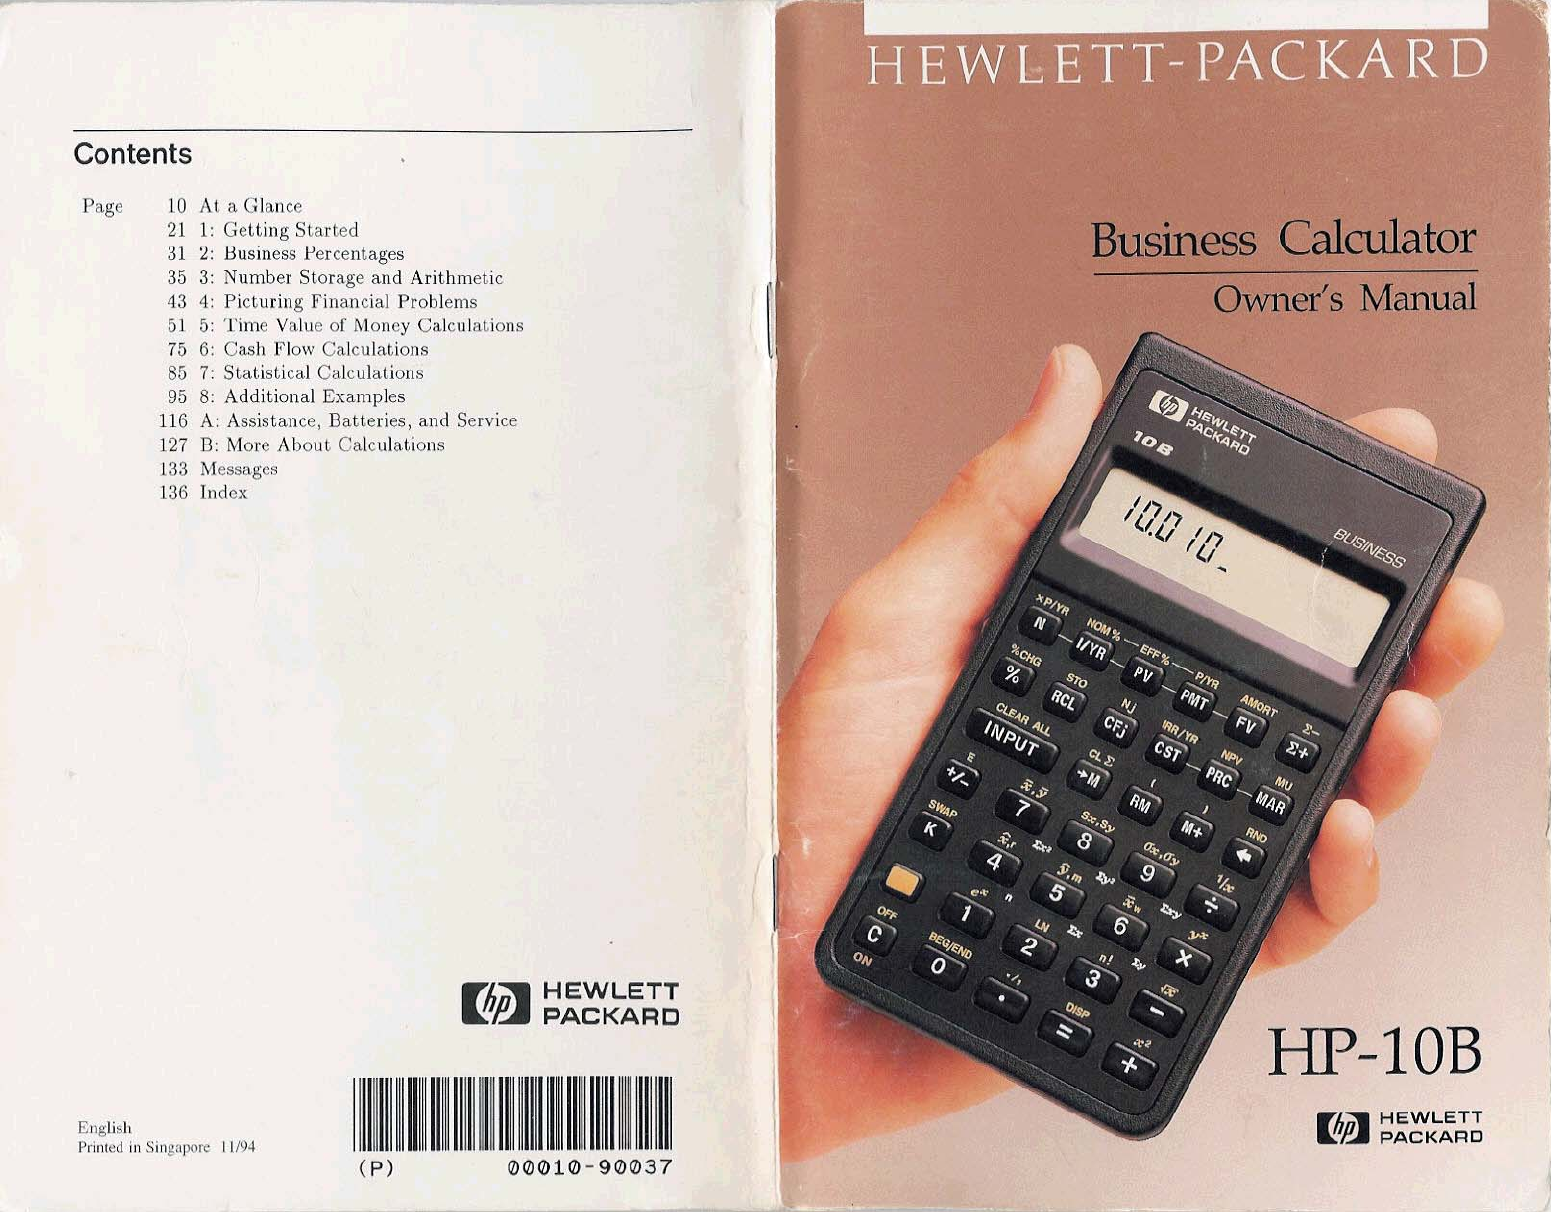 hp hewlett packard calculator hp 10b user guide manualsonline com rh office manualsonline com hp 10b 2 user manual HP Pavilion Dv7 Manual PDF